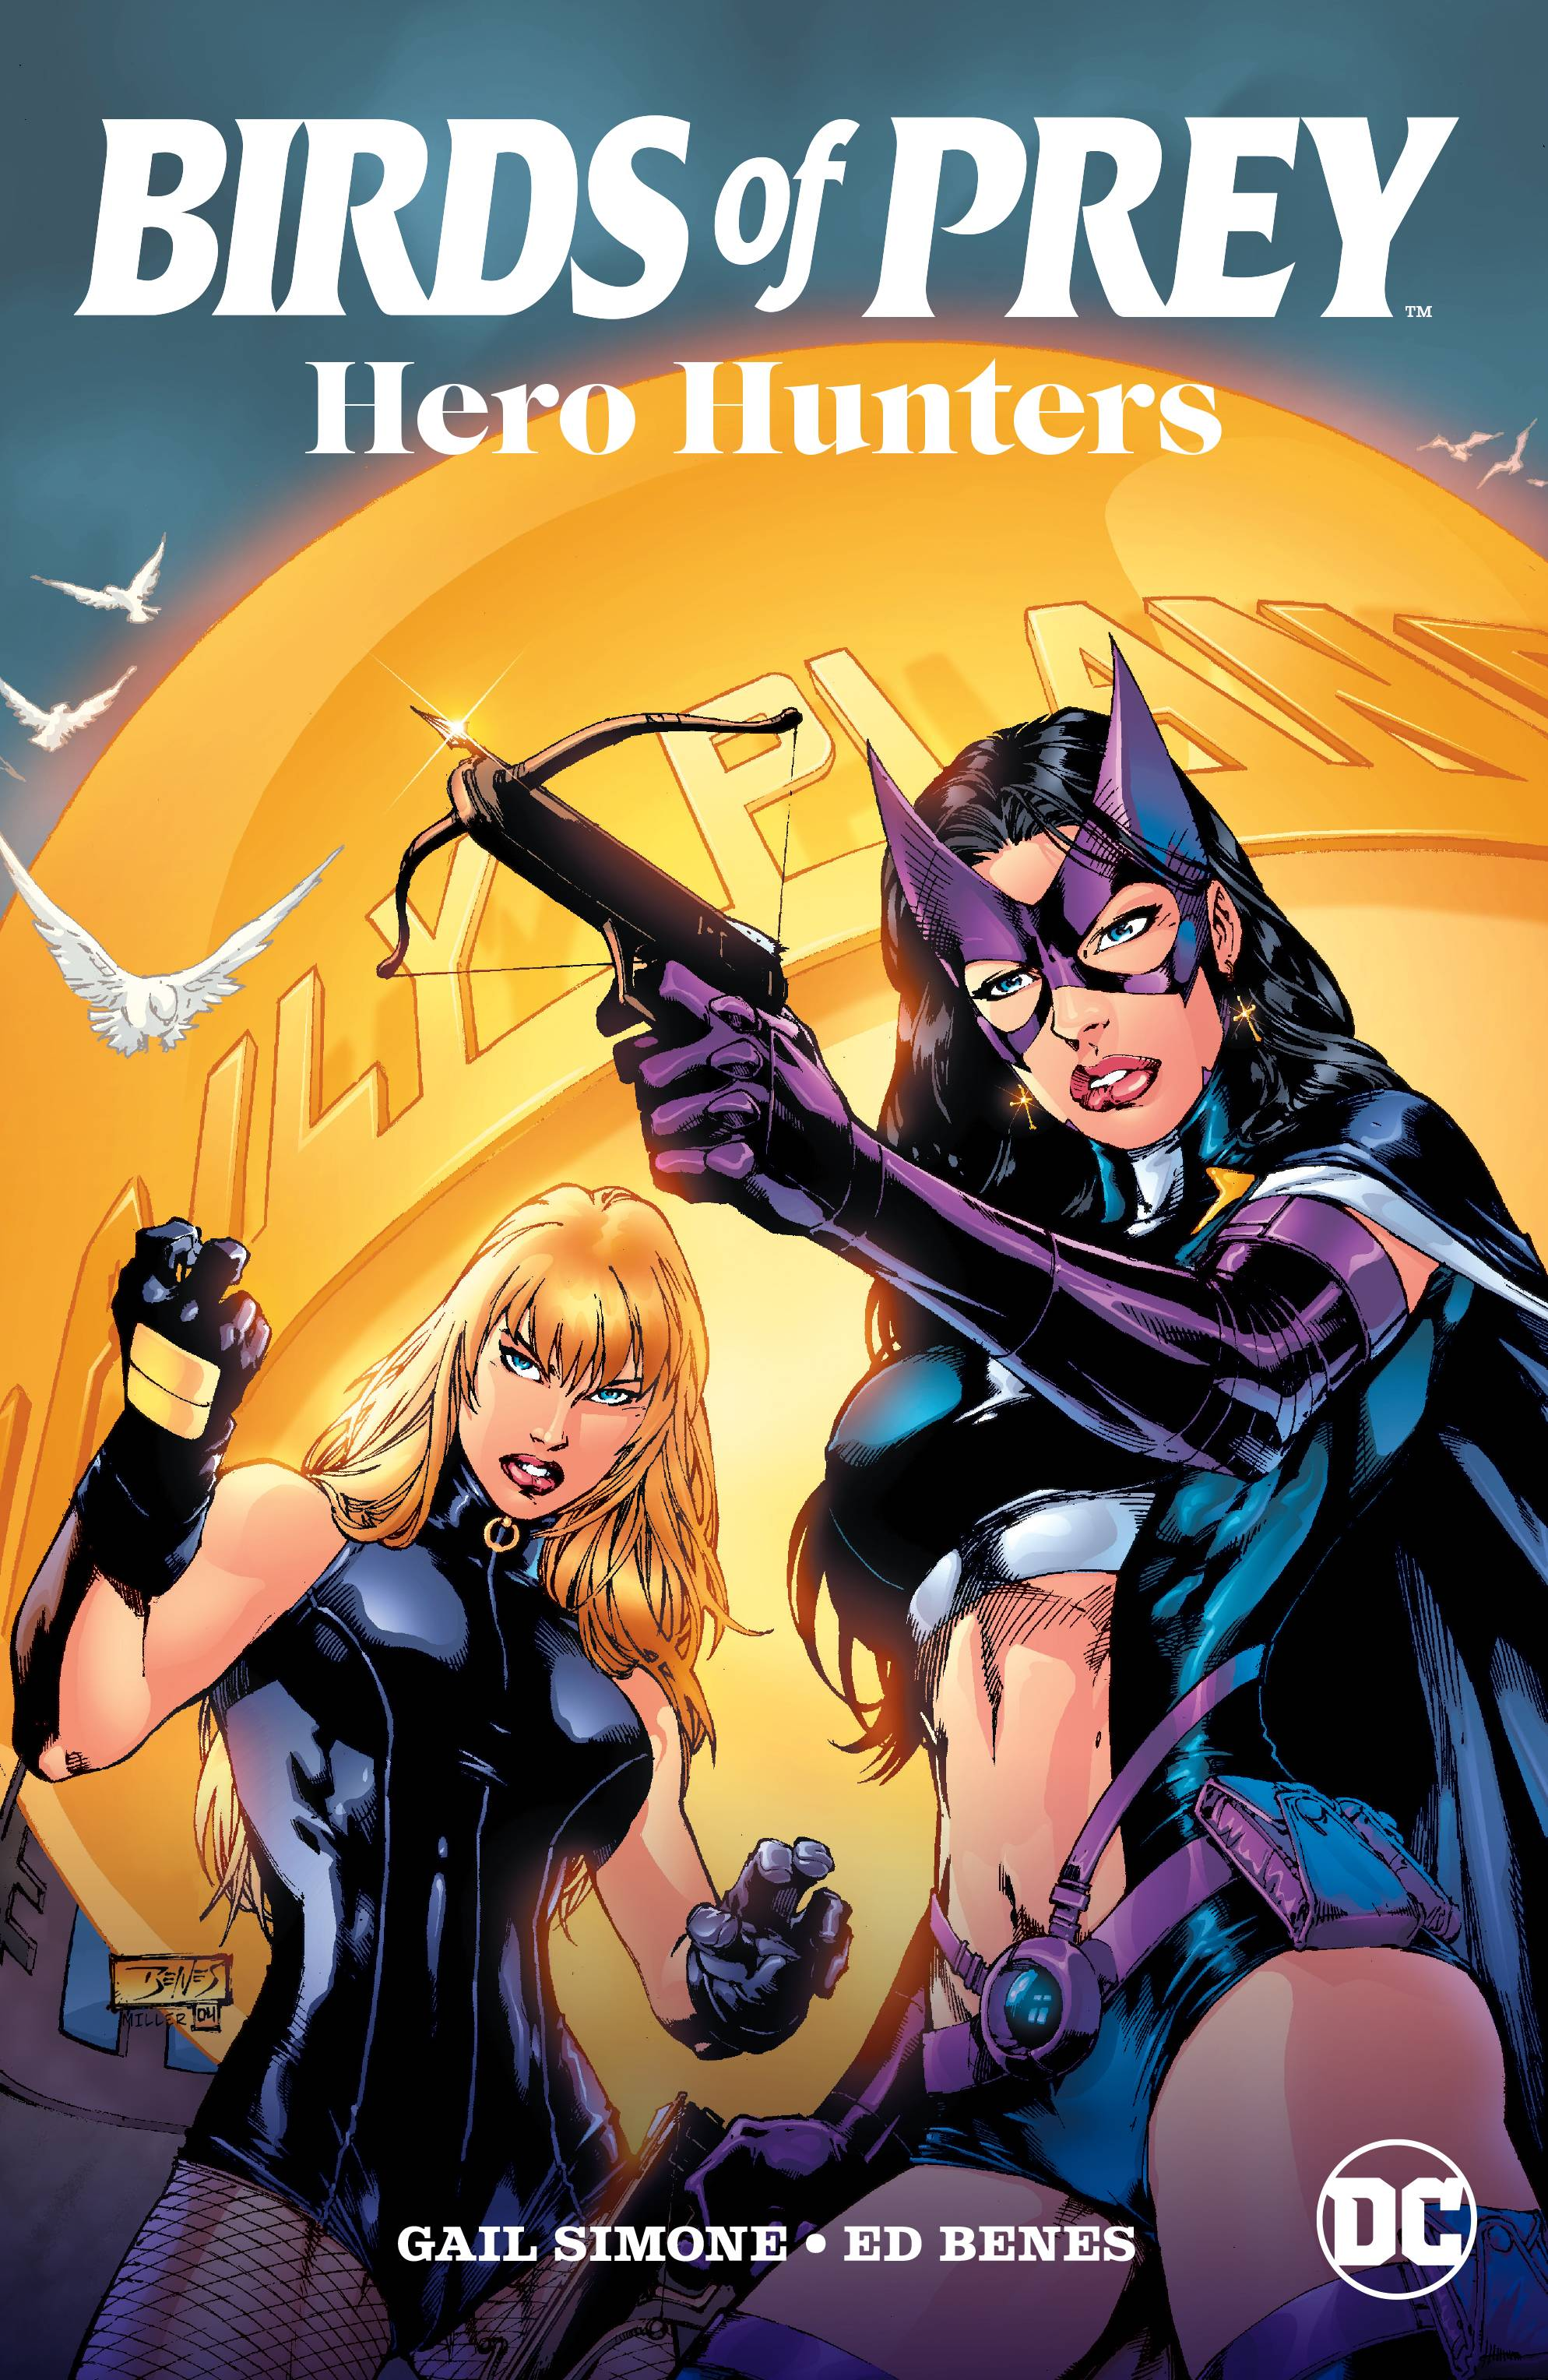 BIRDS OF PREY HEROES HUNTERS TP | Phoenix Comics and Games